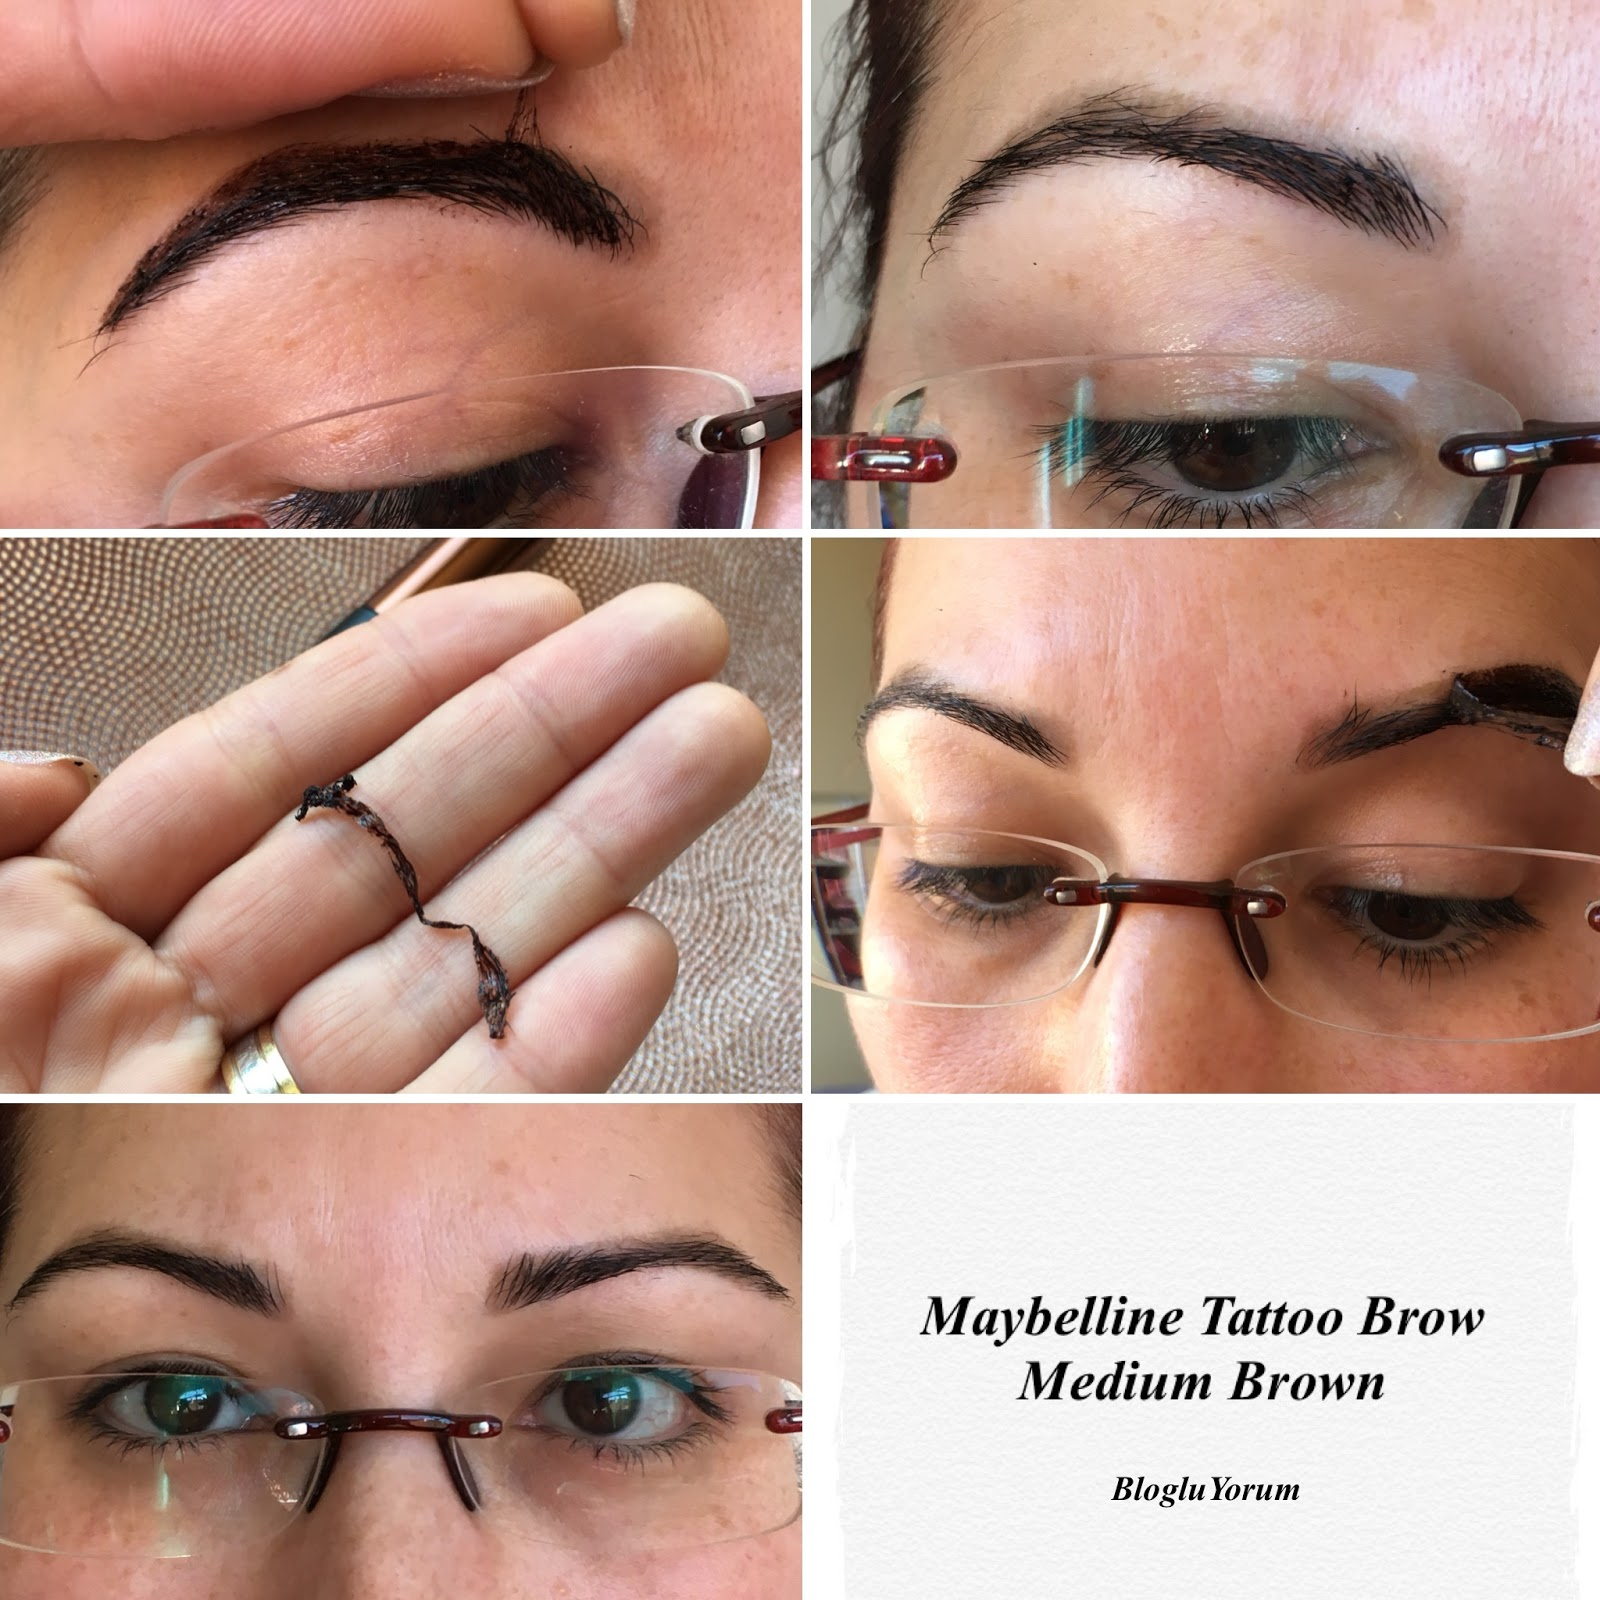 Maybelline tattoo brow gel tint medium brown ncelemes for Maybeline tattoo brow